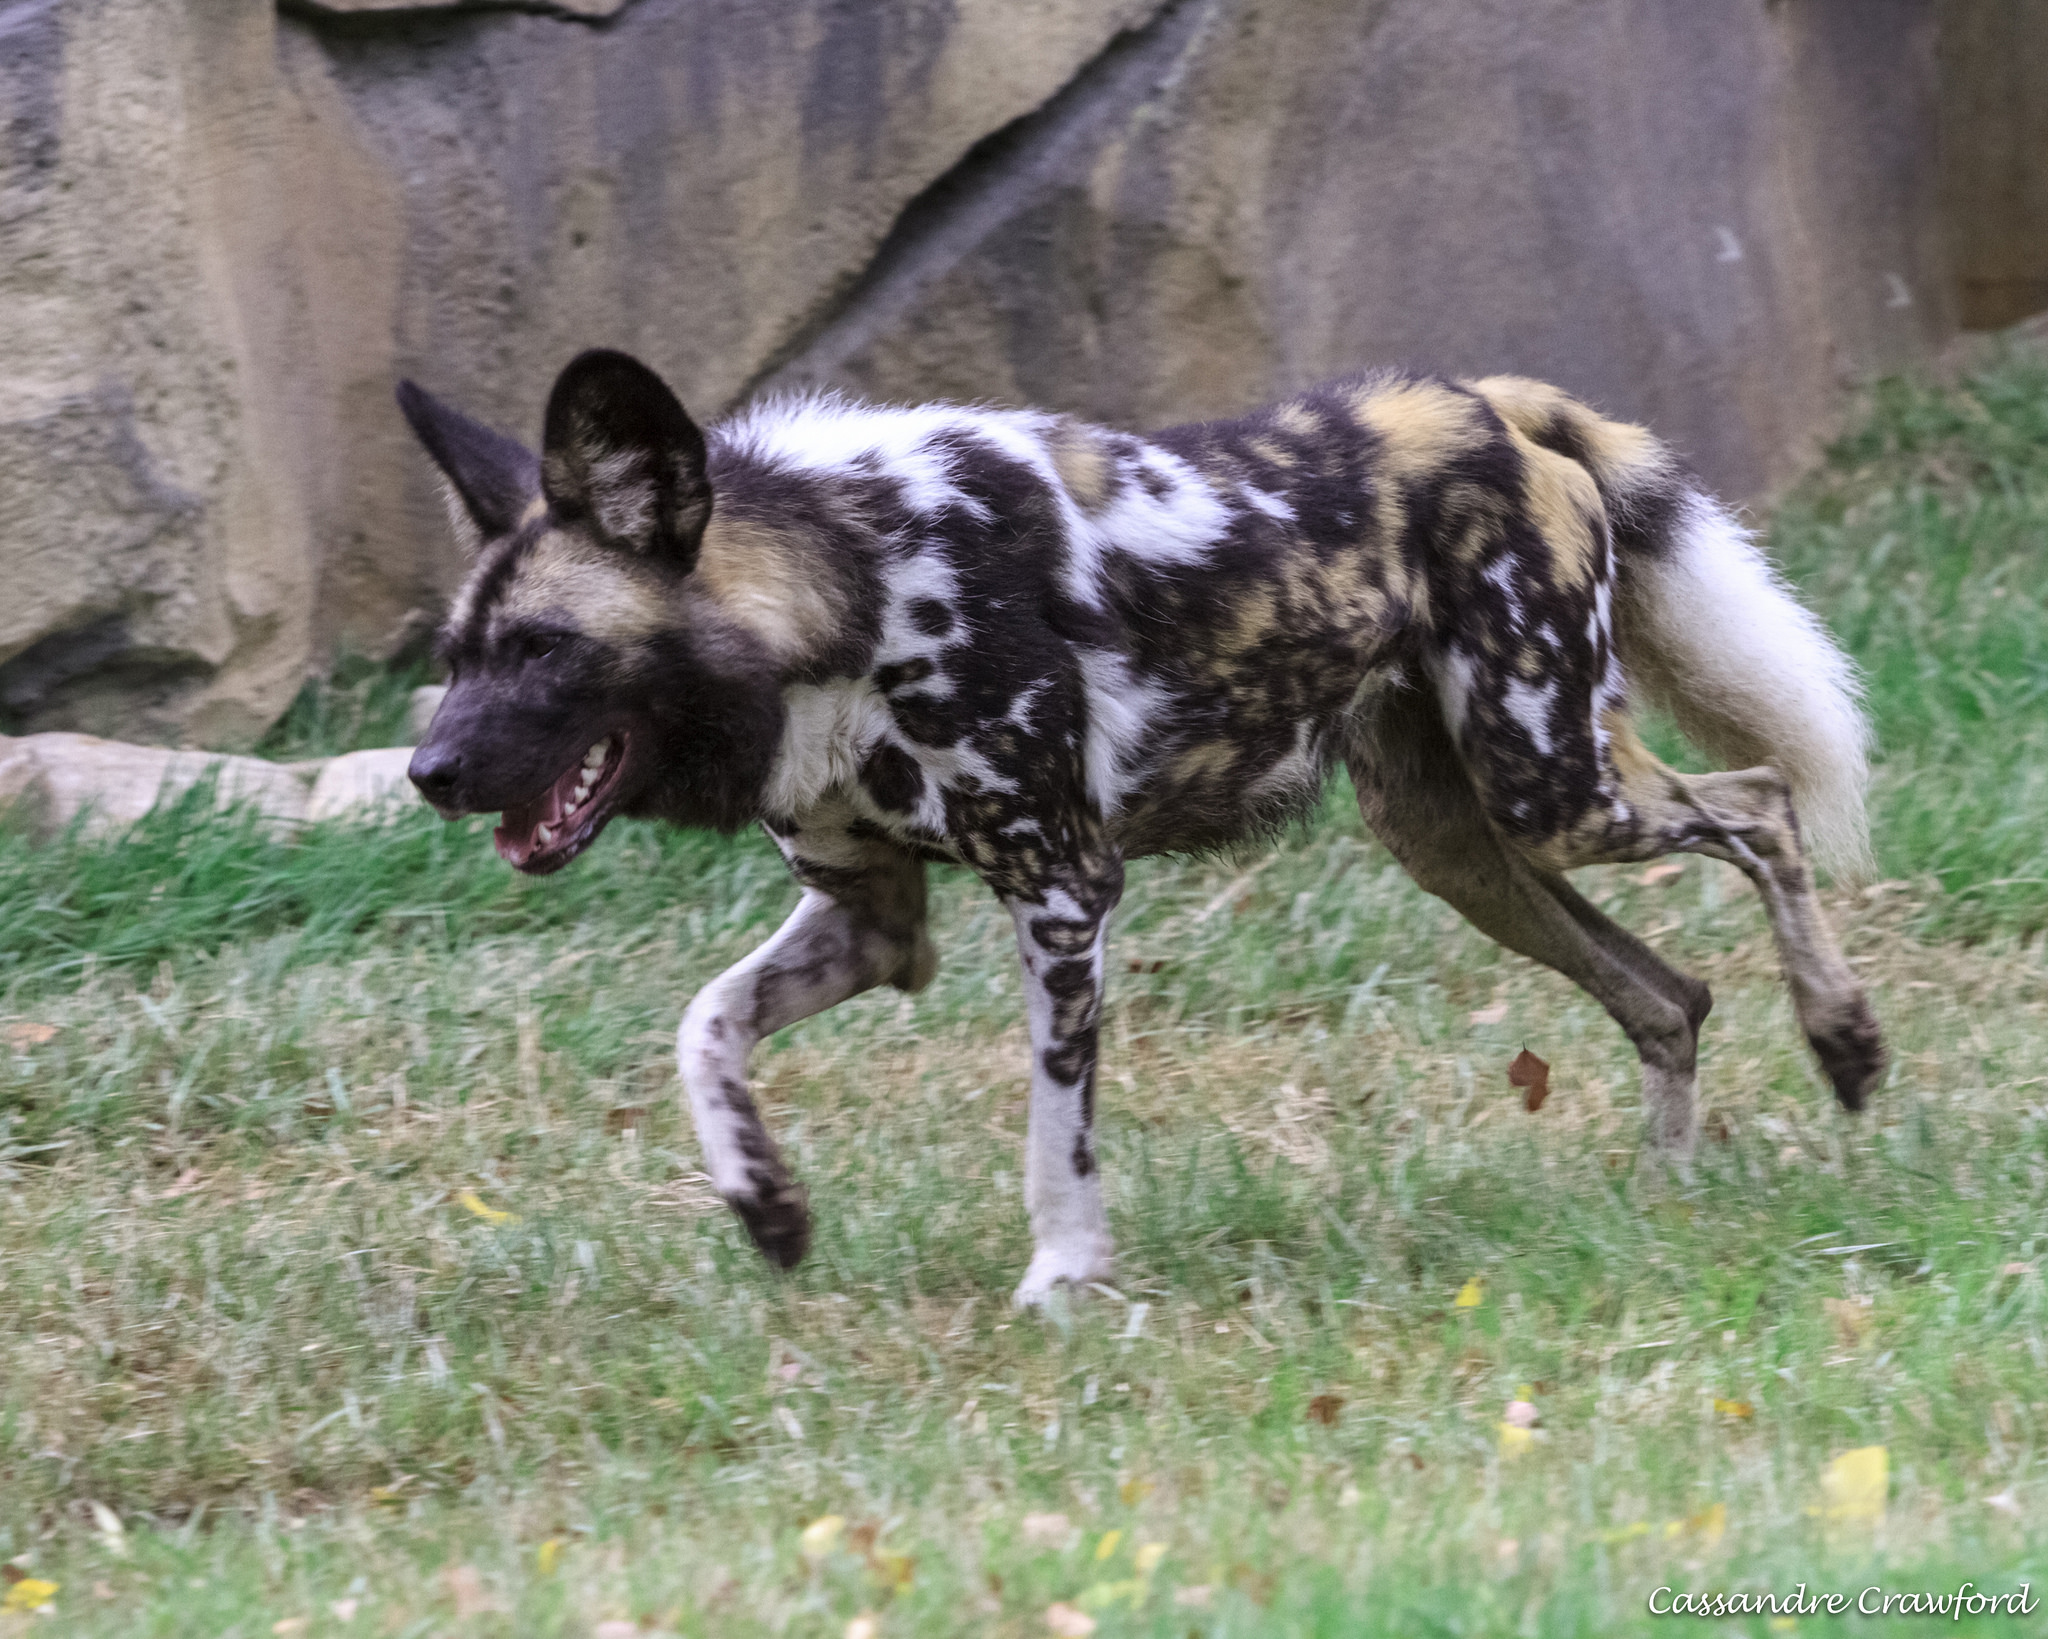 Female painted dog, Imara, runs around Painted Dog Valley